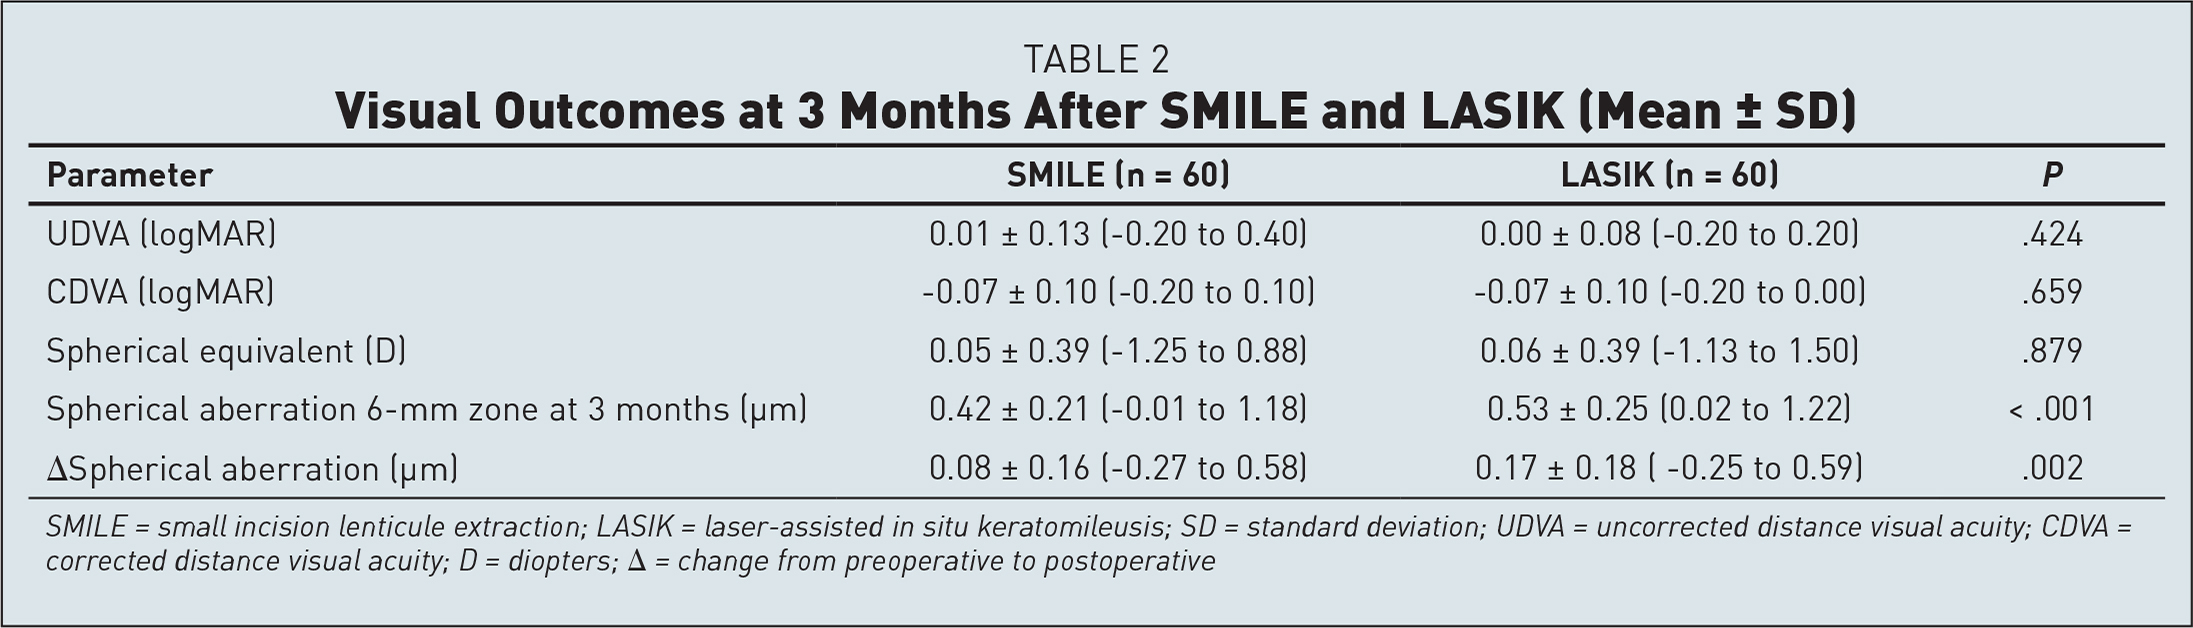 Visual Outcomes at 3 Months After SMILE and LASIK (Mean ± SD)